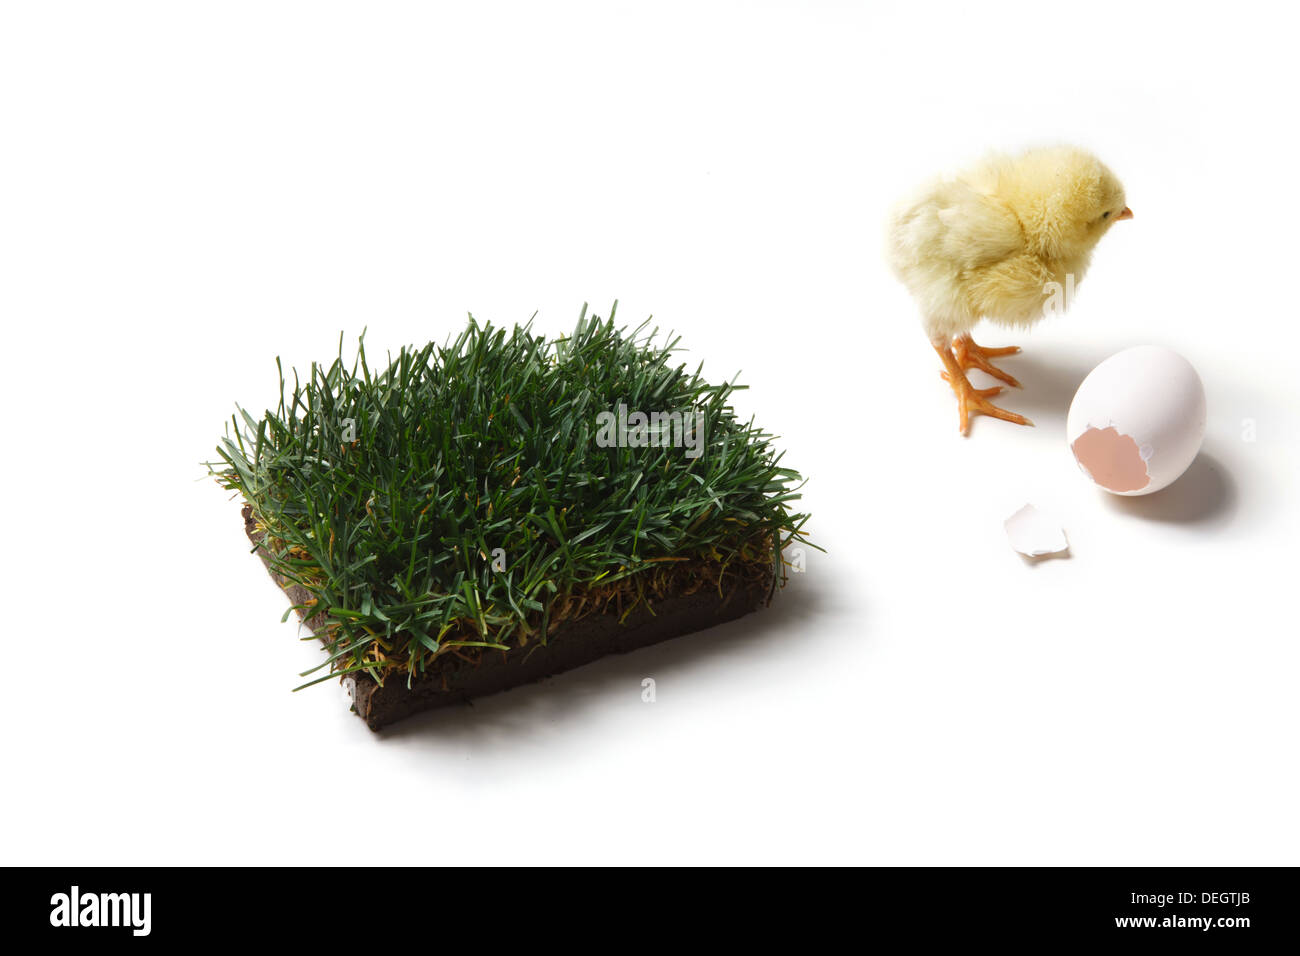 Ckick,small lawn and broken eggshell - Stock Image